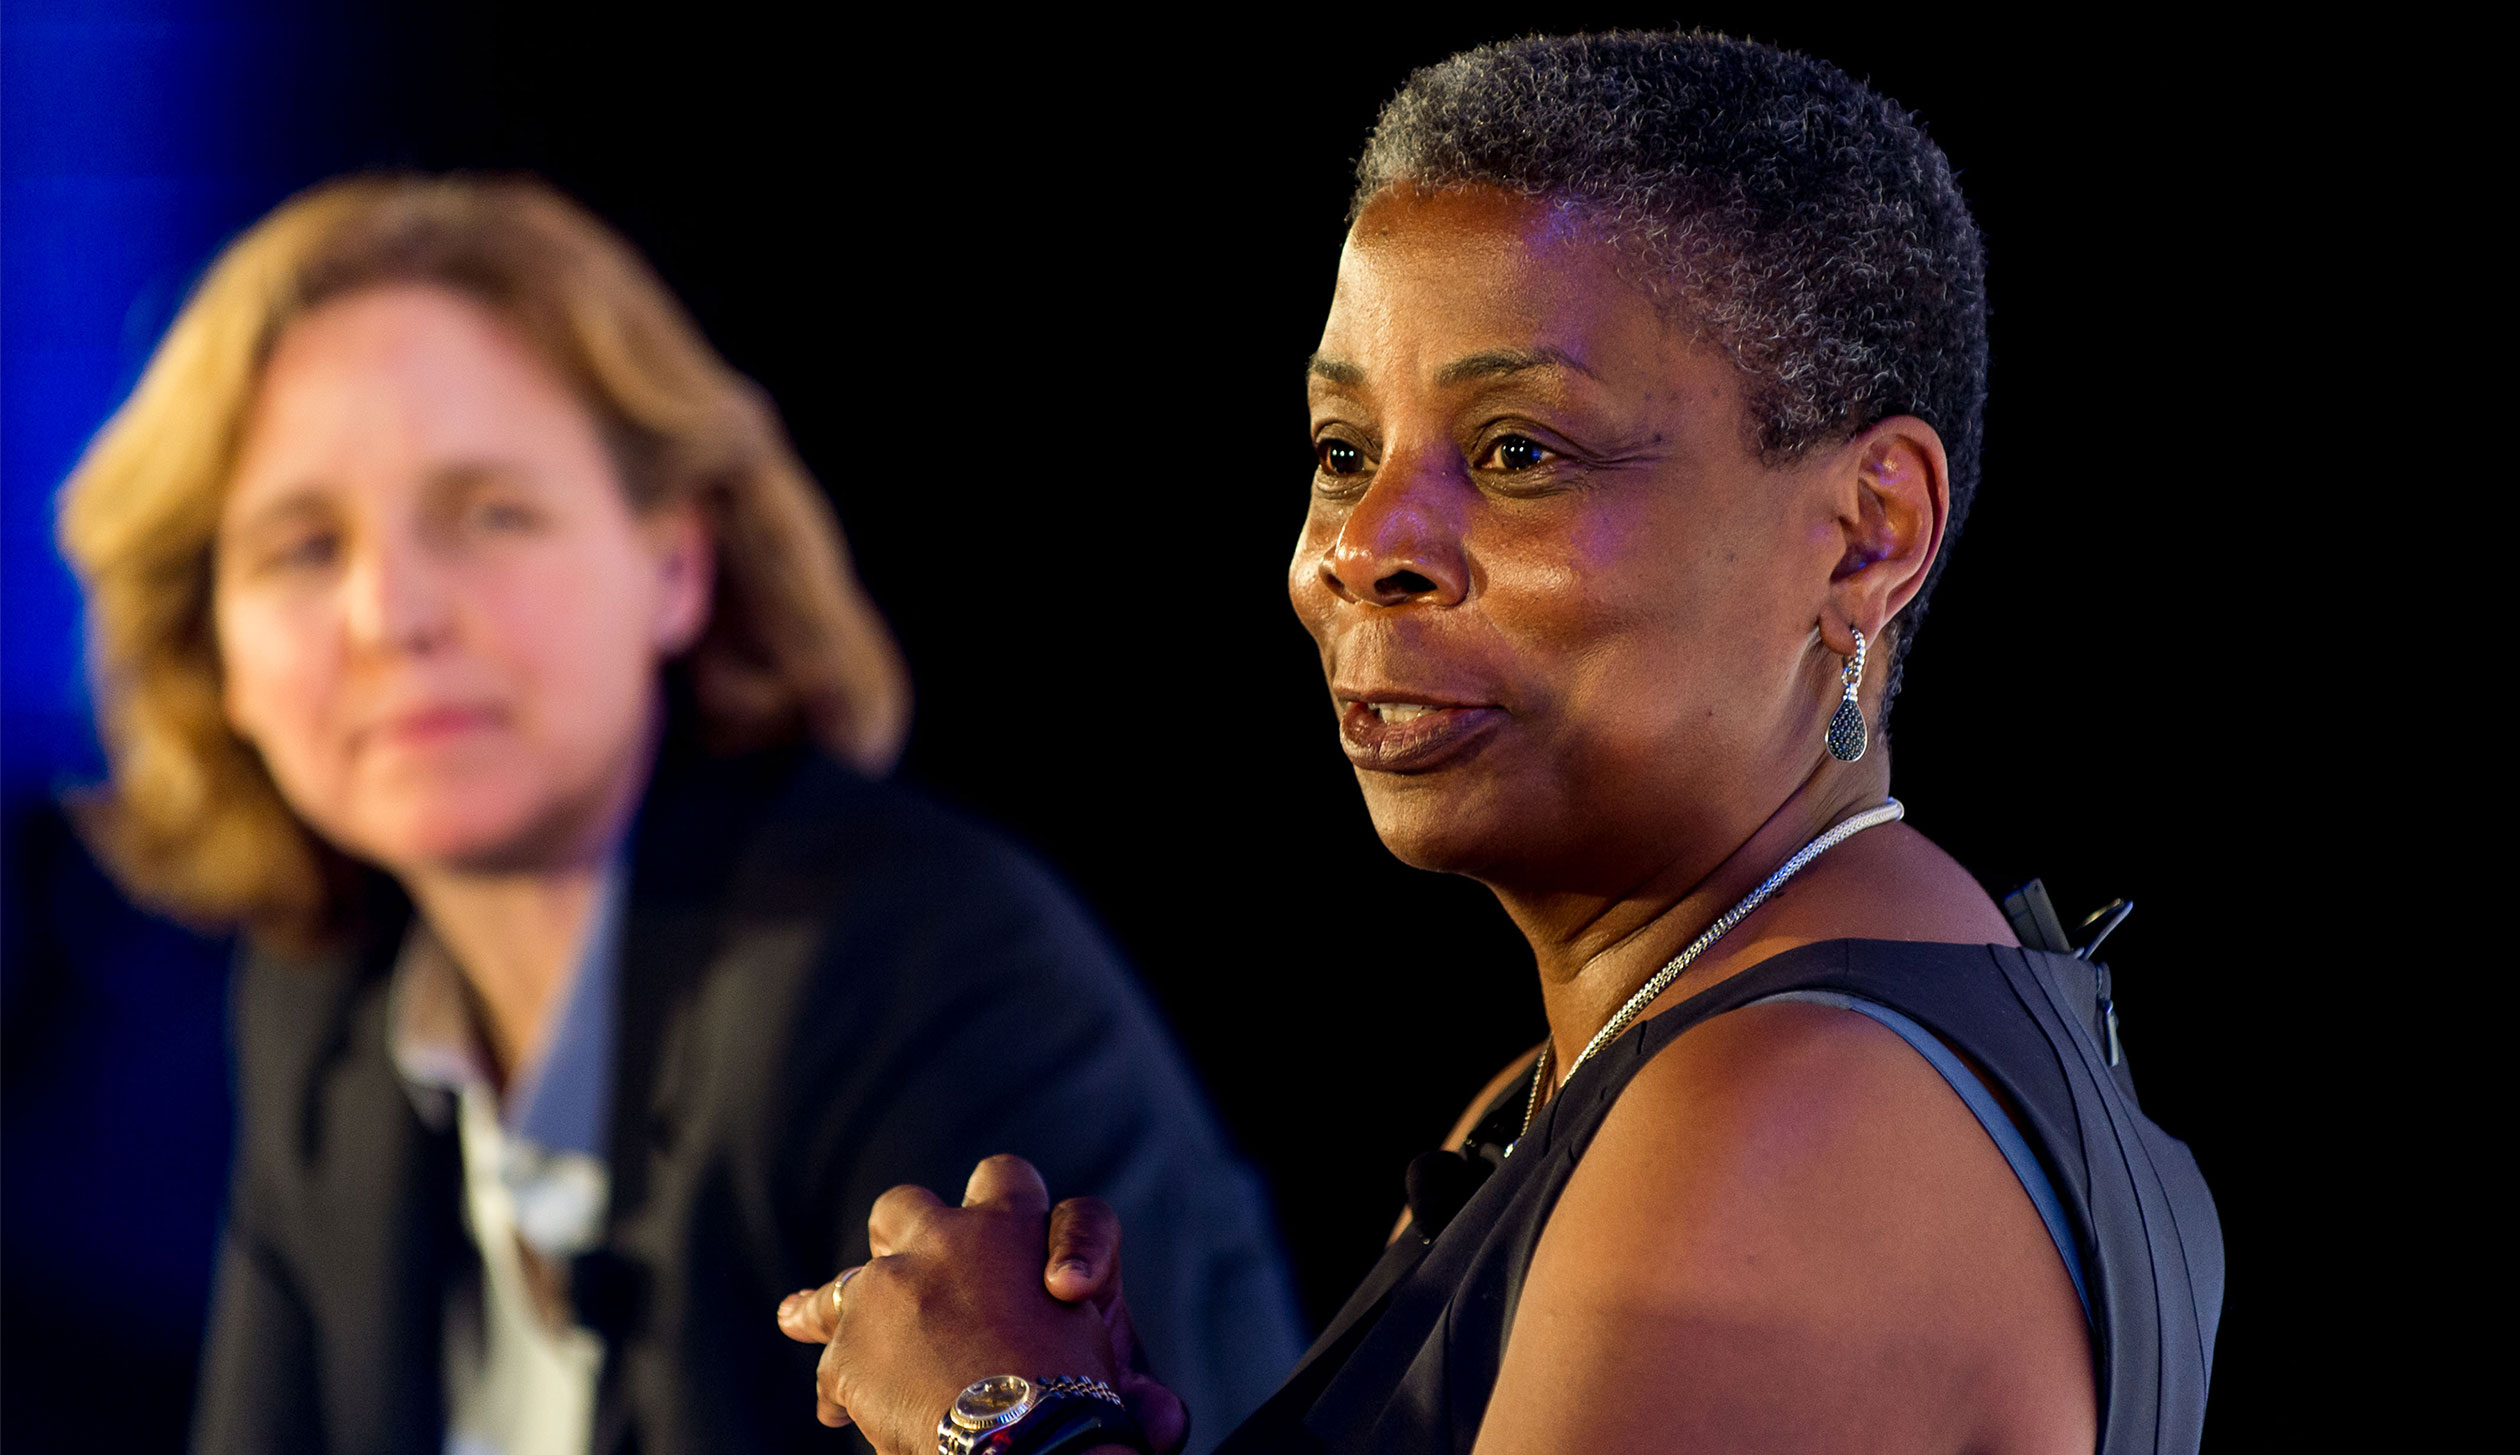 Fortune Most Powerful Women Summit 2015